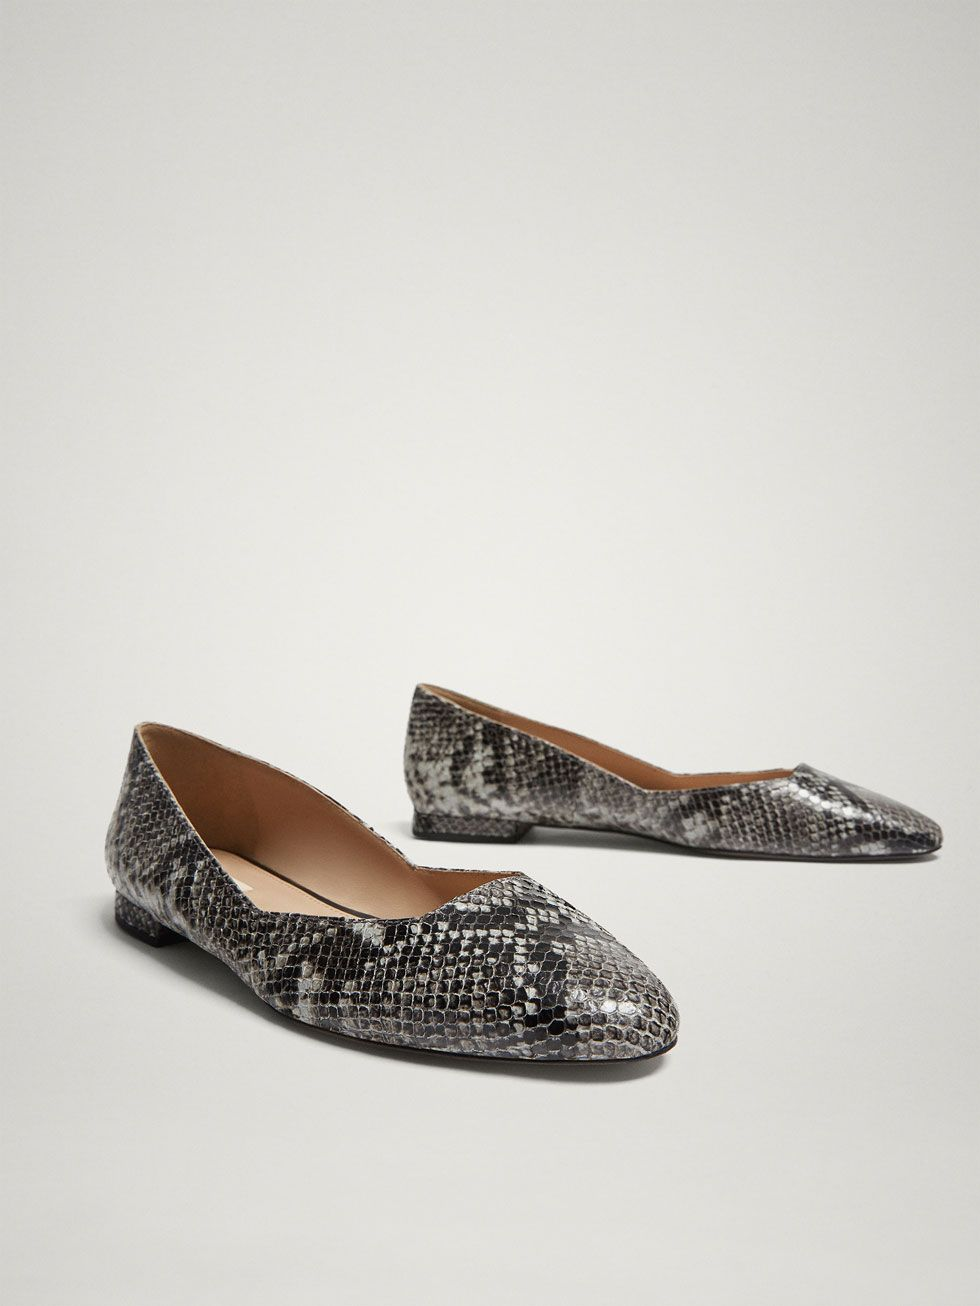 5ae4c95f79 GREY SNAKESKIN PRINT LEATHER BALLERINAS - Women - Massimo Dutti | To ...